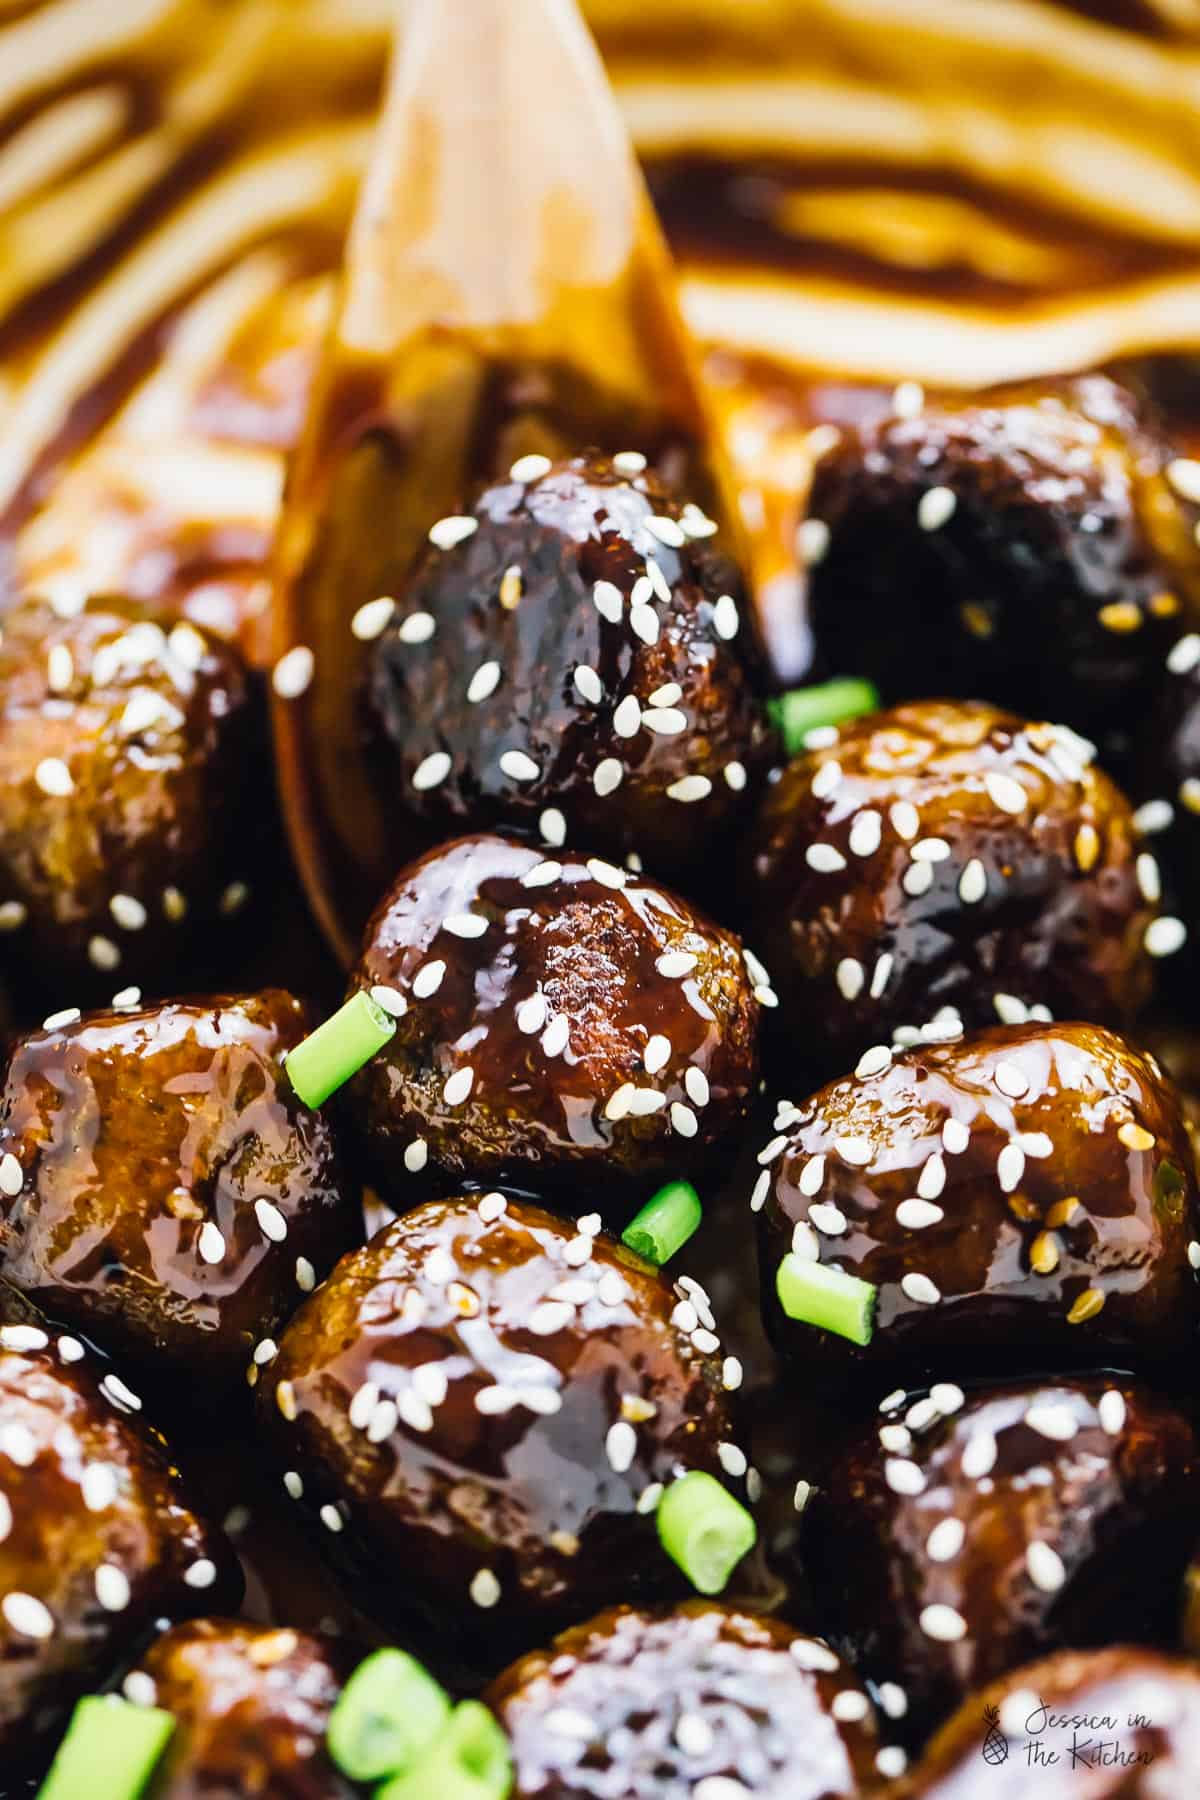 These Vegan Teriyaki Meatballs have the perfect texture and taste divine! They are incredibly easy to make, coated in a homemade sweet and sticky teriyaki sauce and so meal preppable! via https://jessicainthekitchen.com #vegan #veganmeatballs #teriyaki #teriyakimeatballs #veganmealprep #mealprep #glutenfree #easyrecipes #vegetarian #veganrecipes